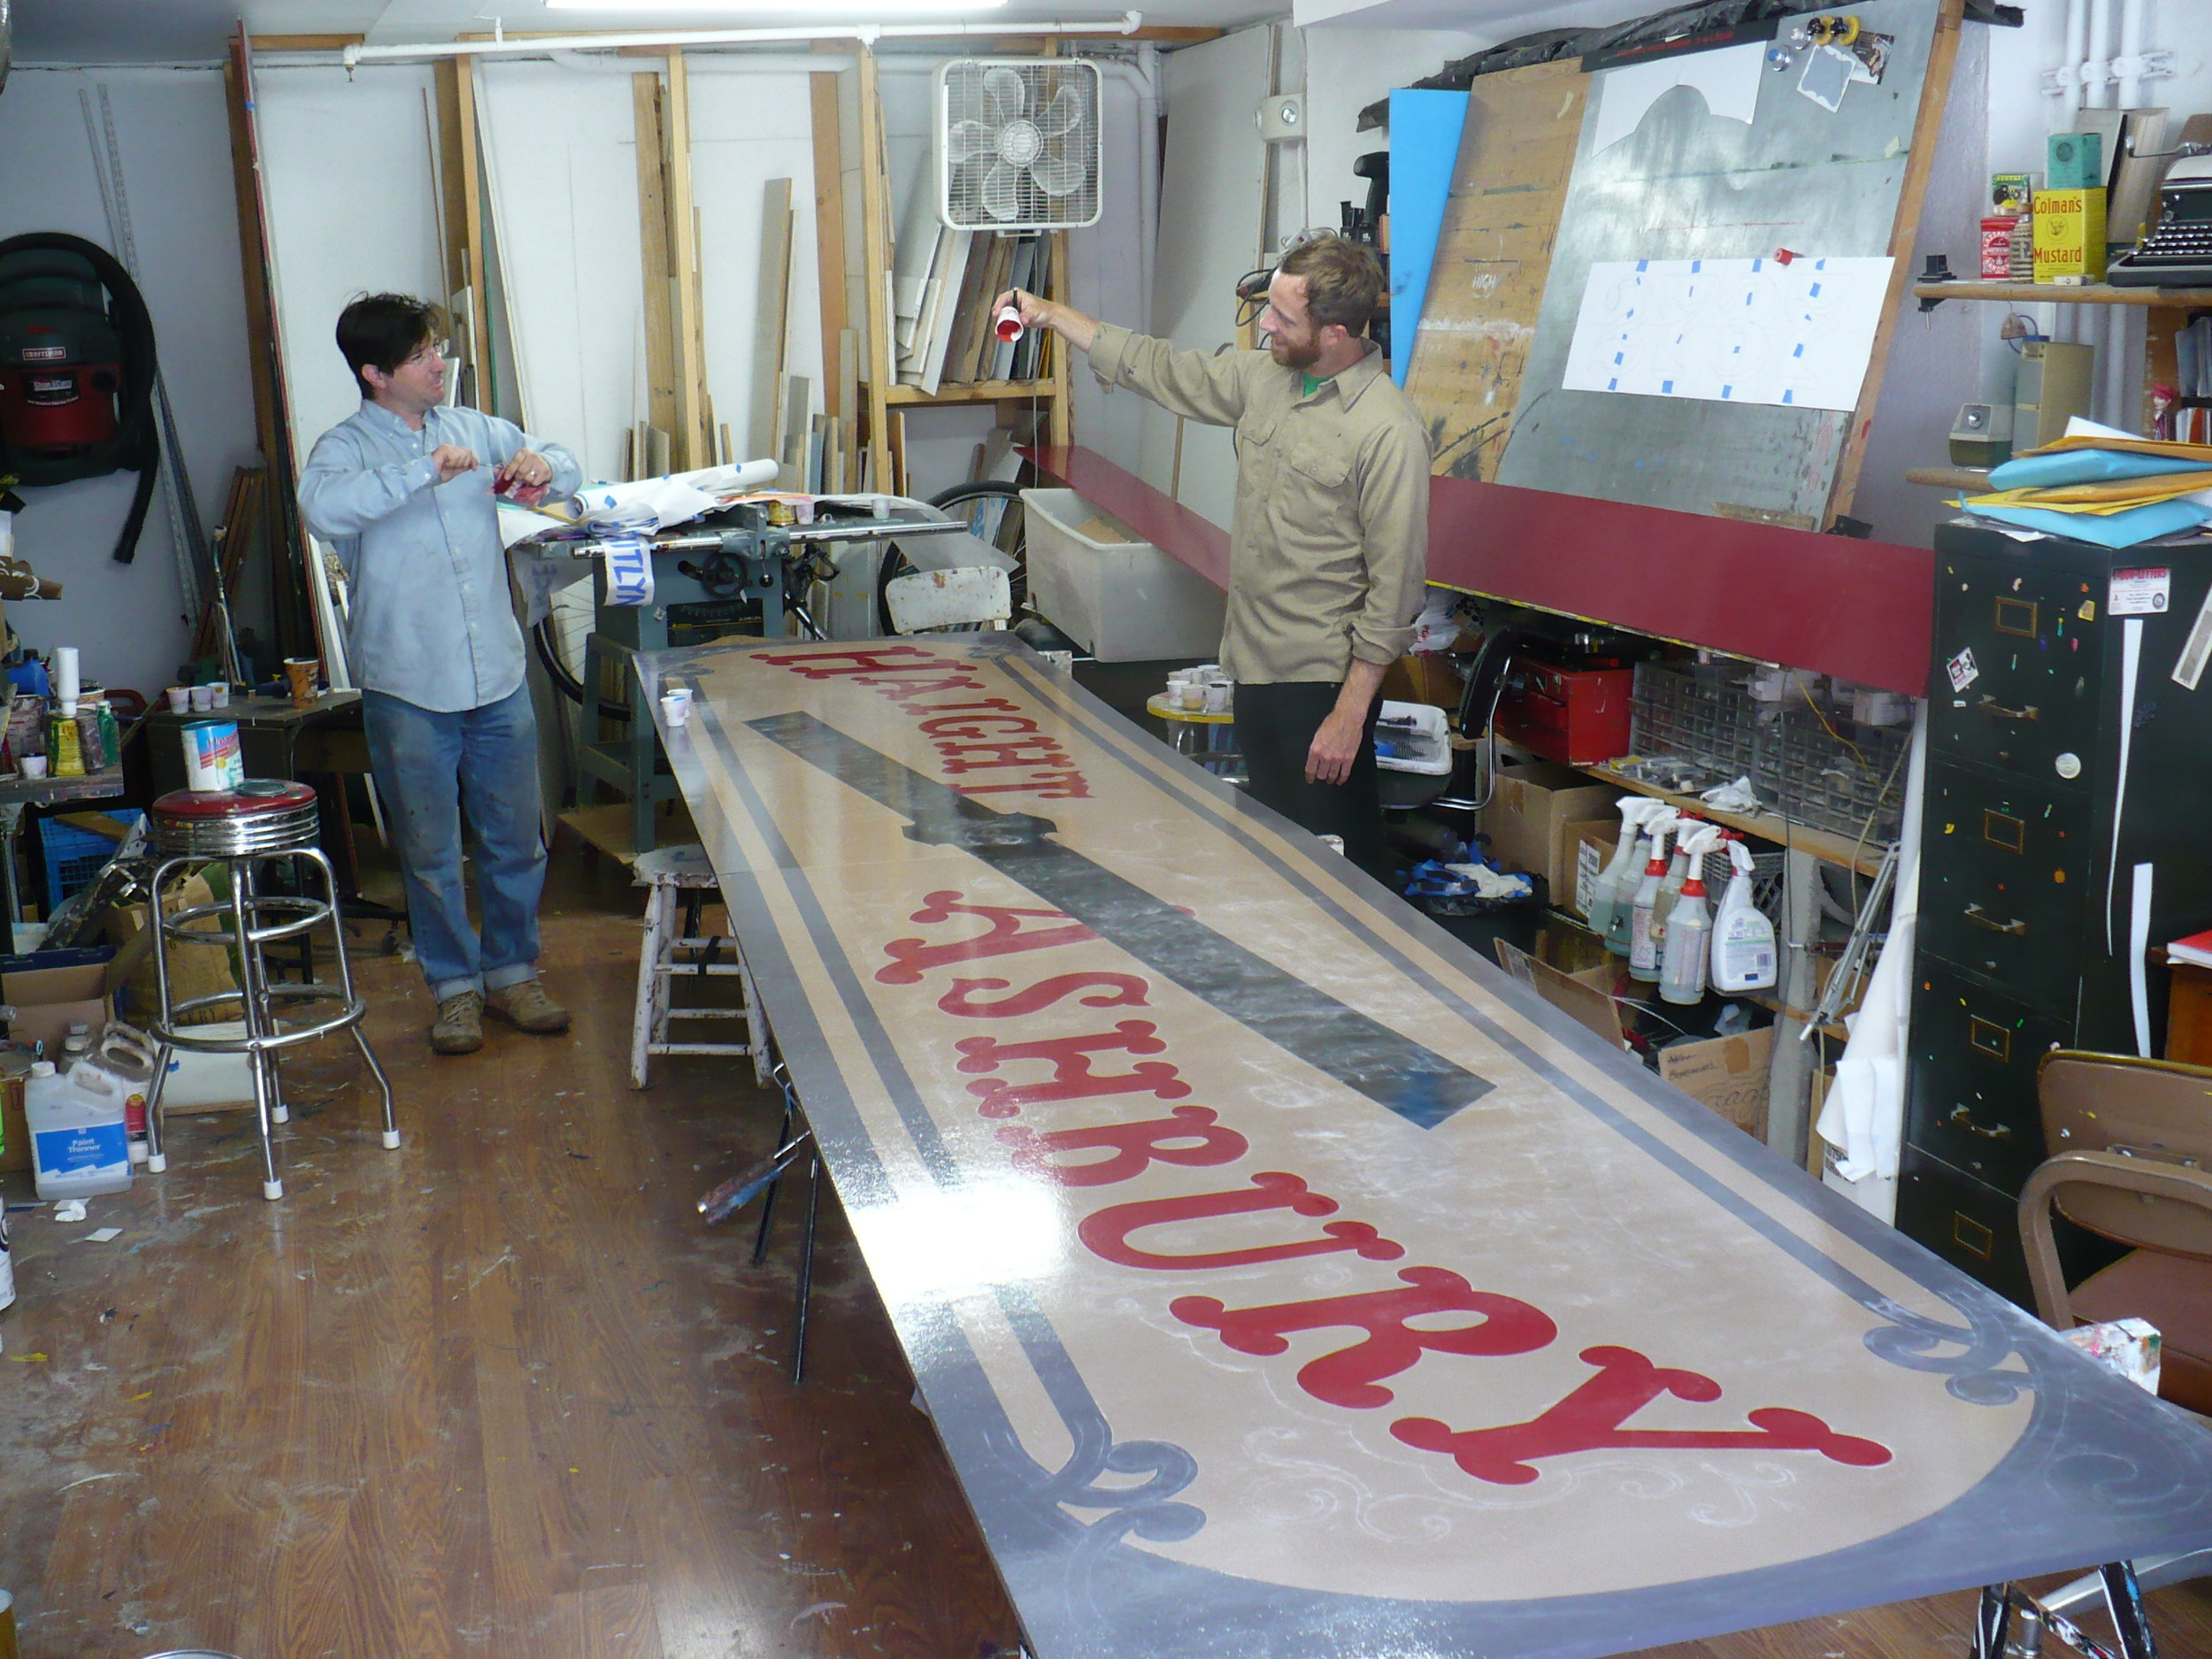 ORIG-scenes-from-a-sign-shop_3161958884_o.jpg